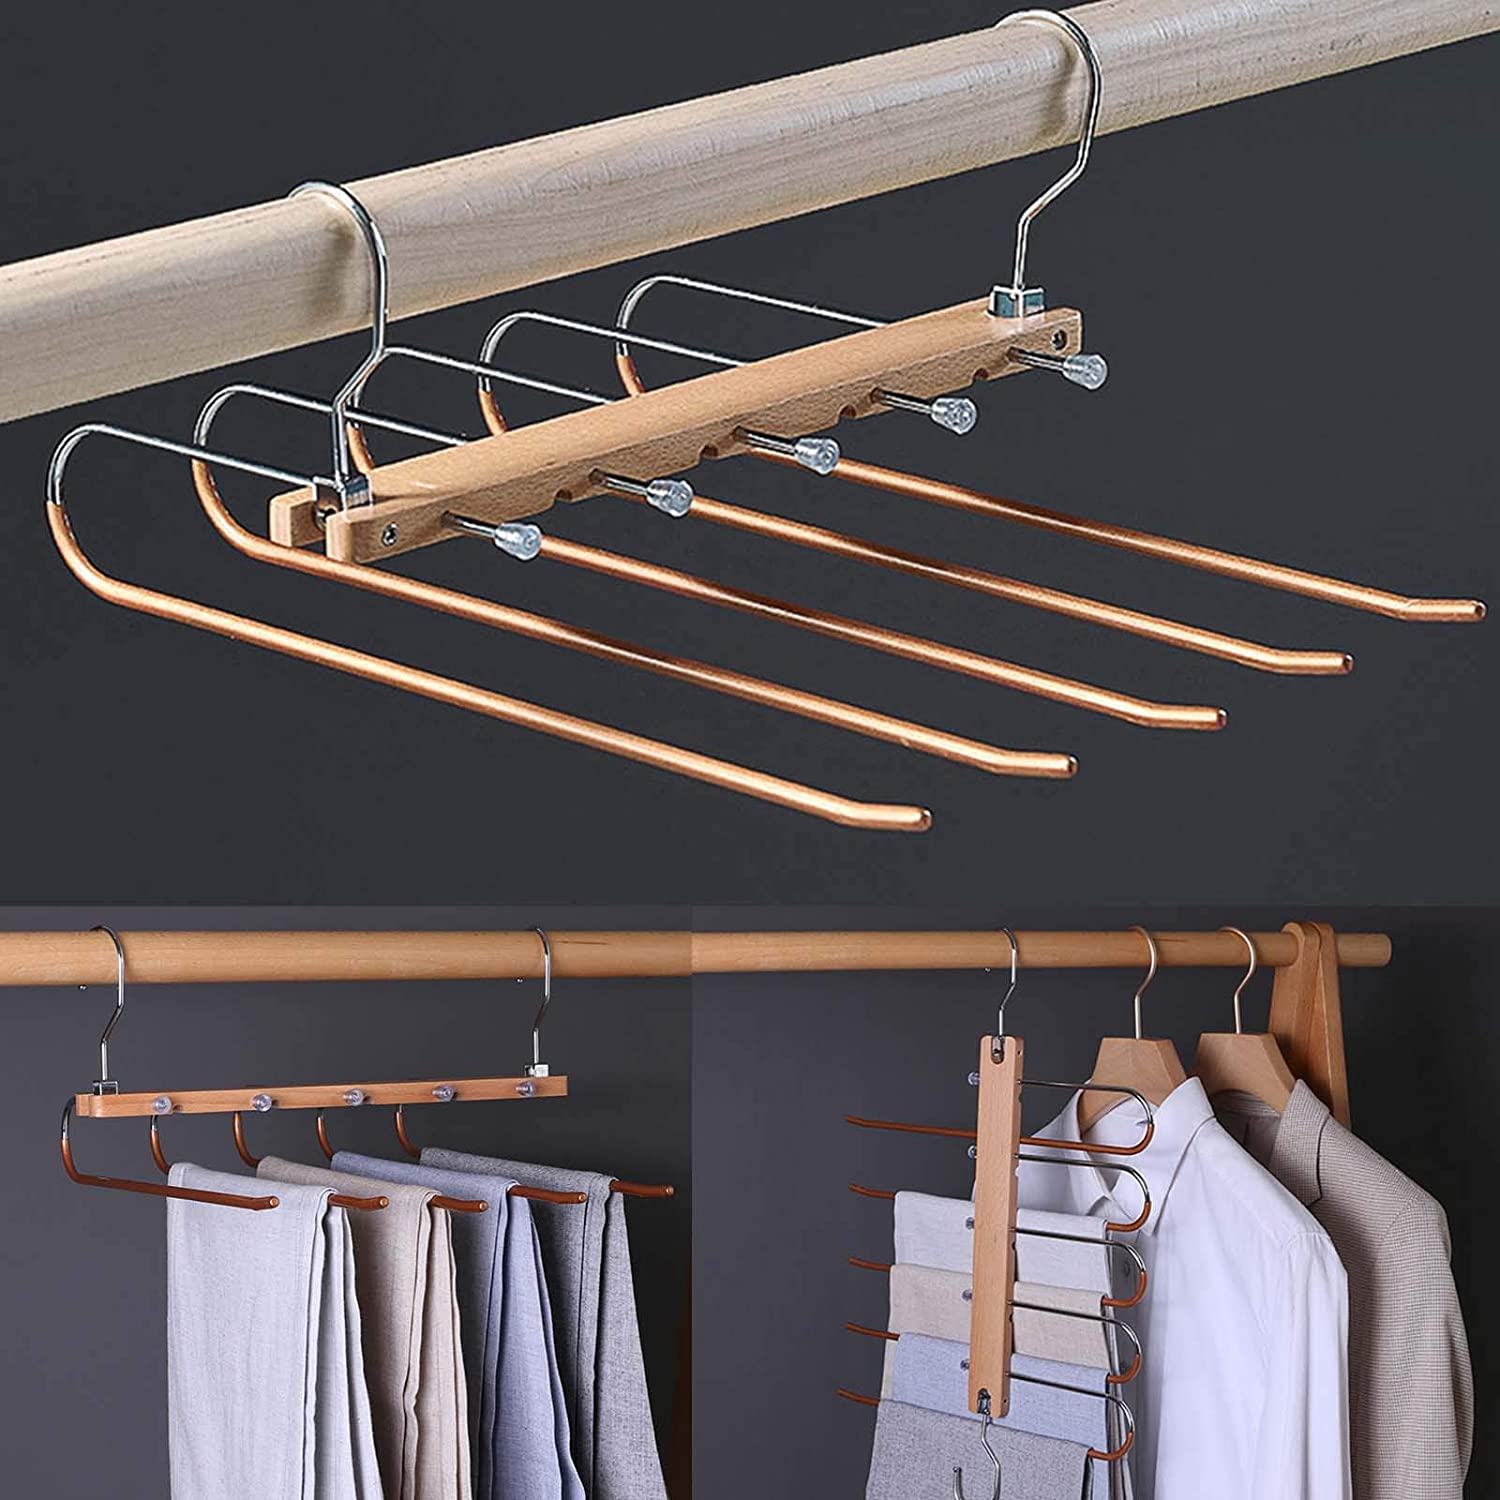 Foldable Space Saving Max 80% OFF Pants Manufacturer OFFicial shop Hangers Tr Stainless Wooden Steel